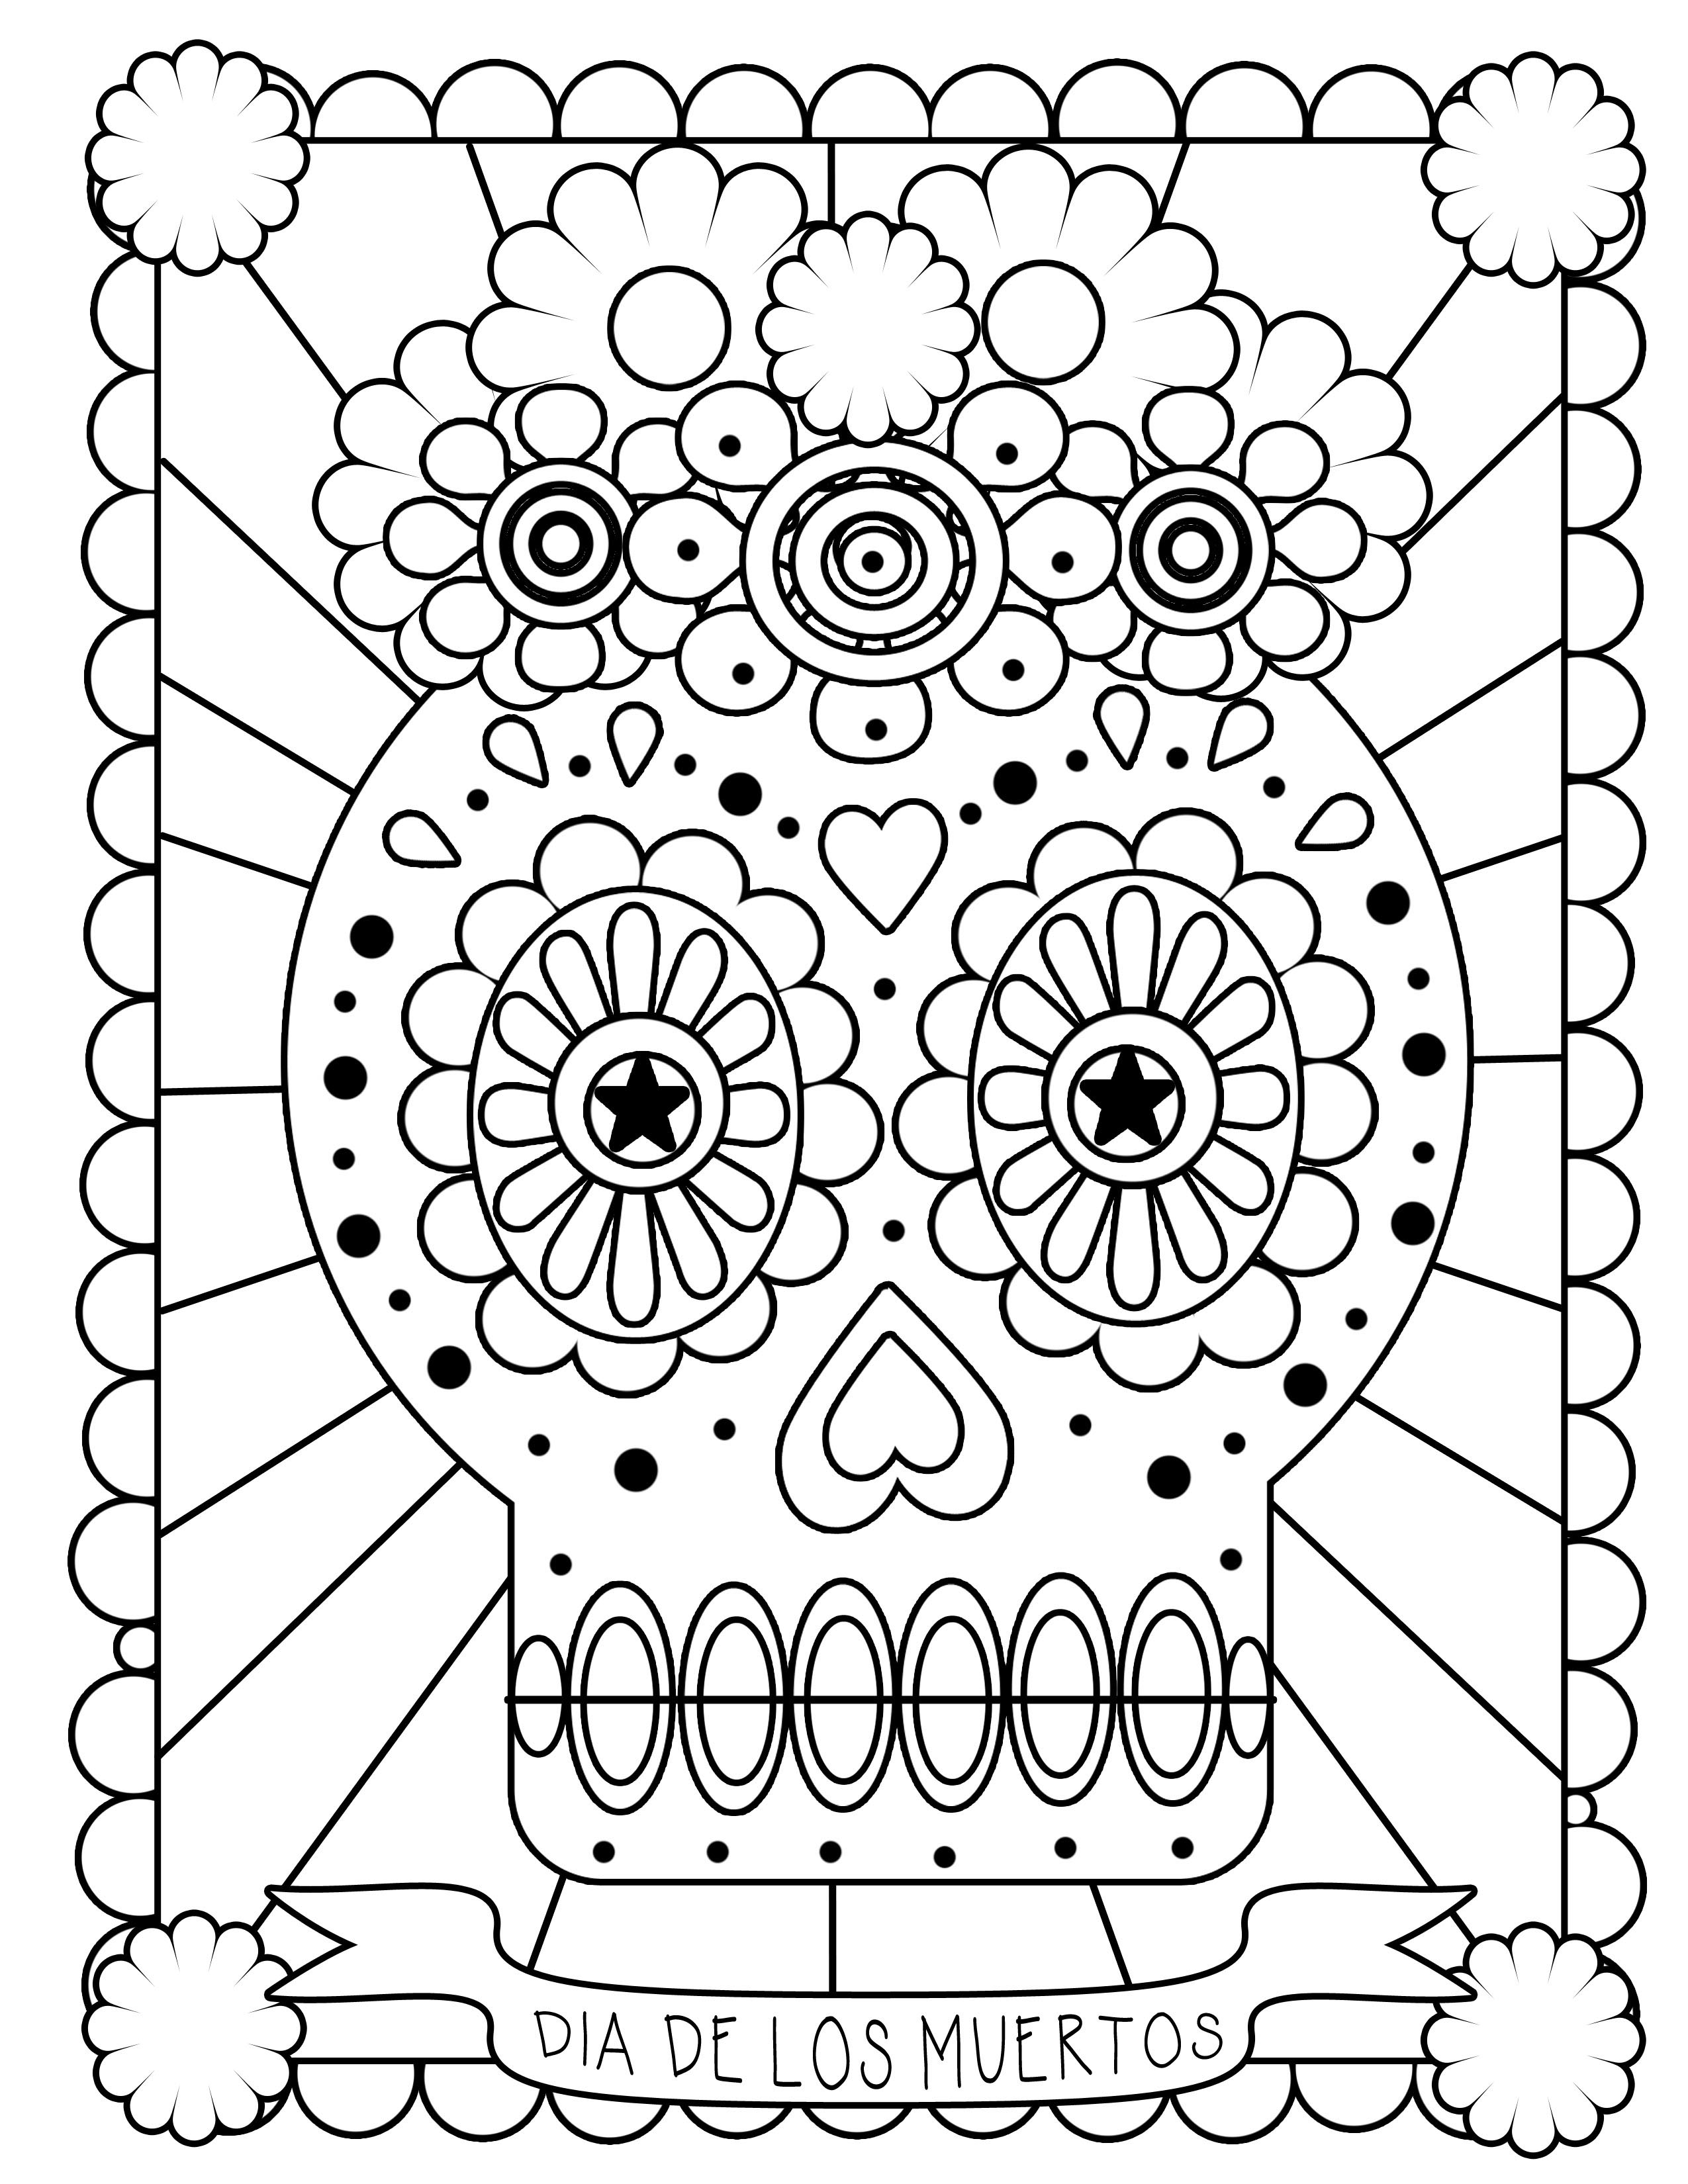 day of the dead coloring pages free free printable day of the dead coloring pages best coloring pages free dead day of the